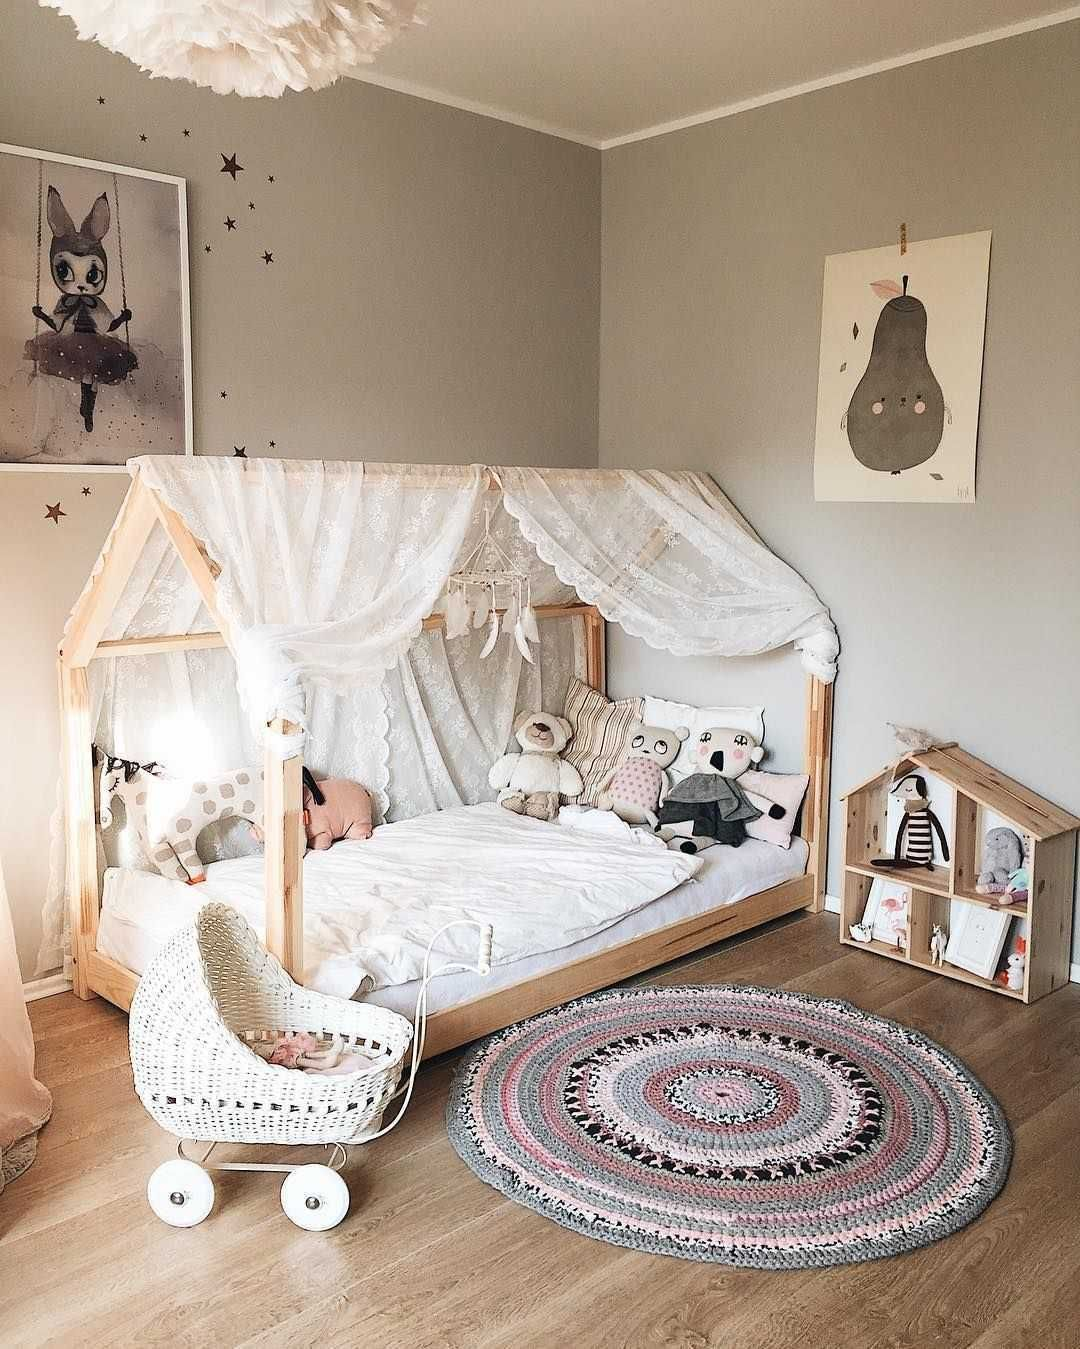 19 Amazing Childrens Beds House Bed Ideas Devchachi Komnaty